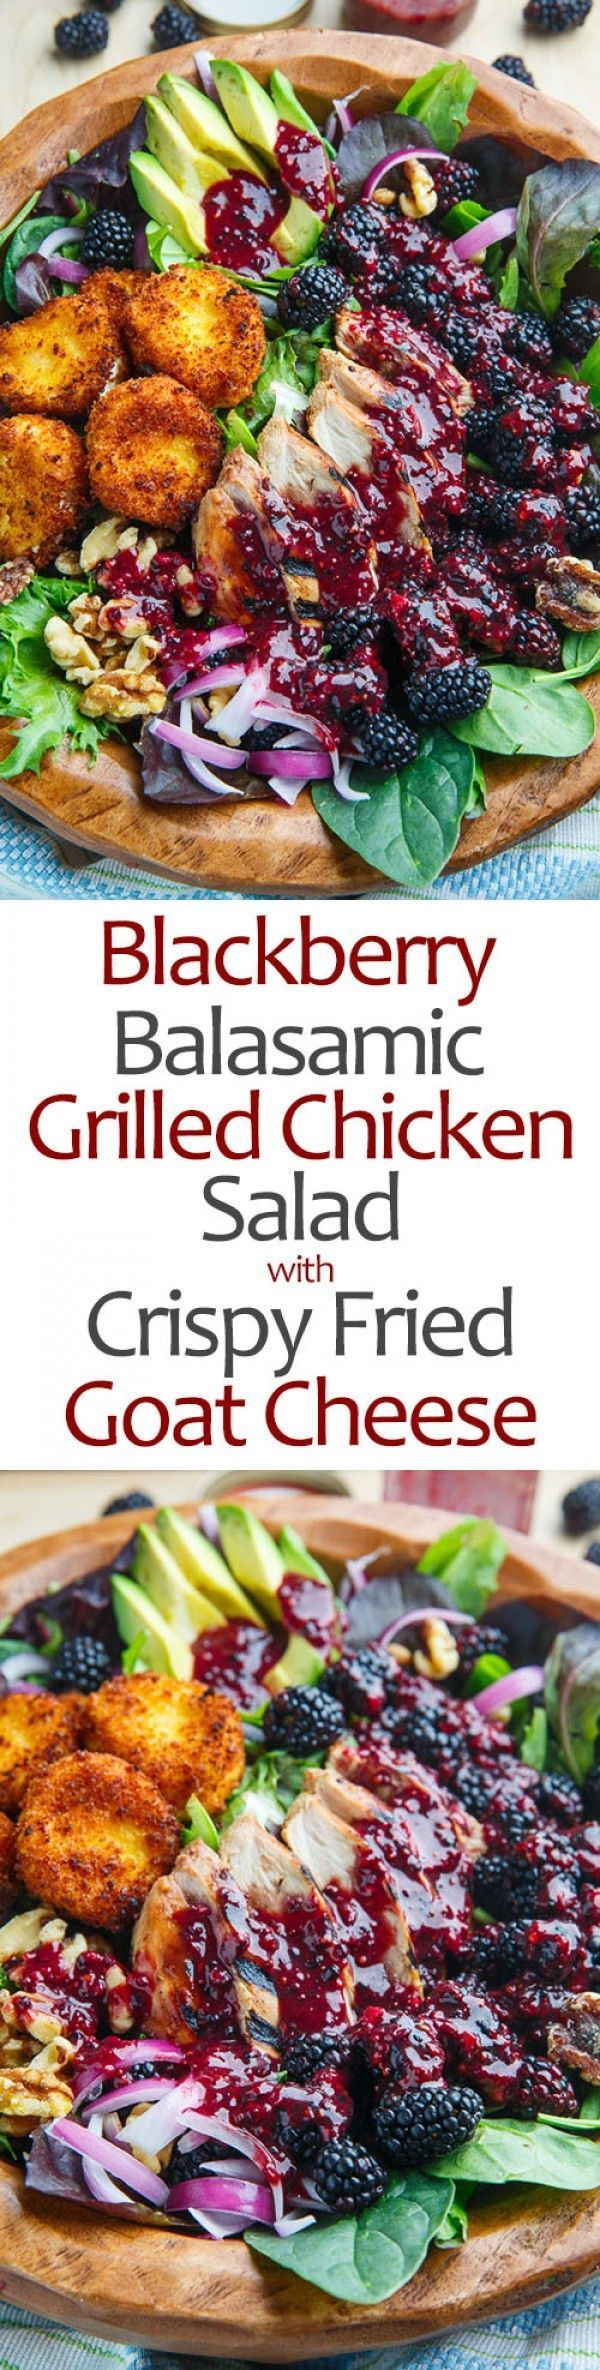 Get the reipe Blackberry Balsamic Grilled Chicken Salad wit Crispy Fried Goat Cheese /recipes_to_go/